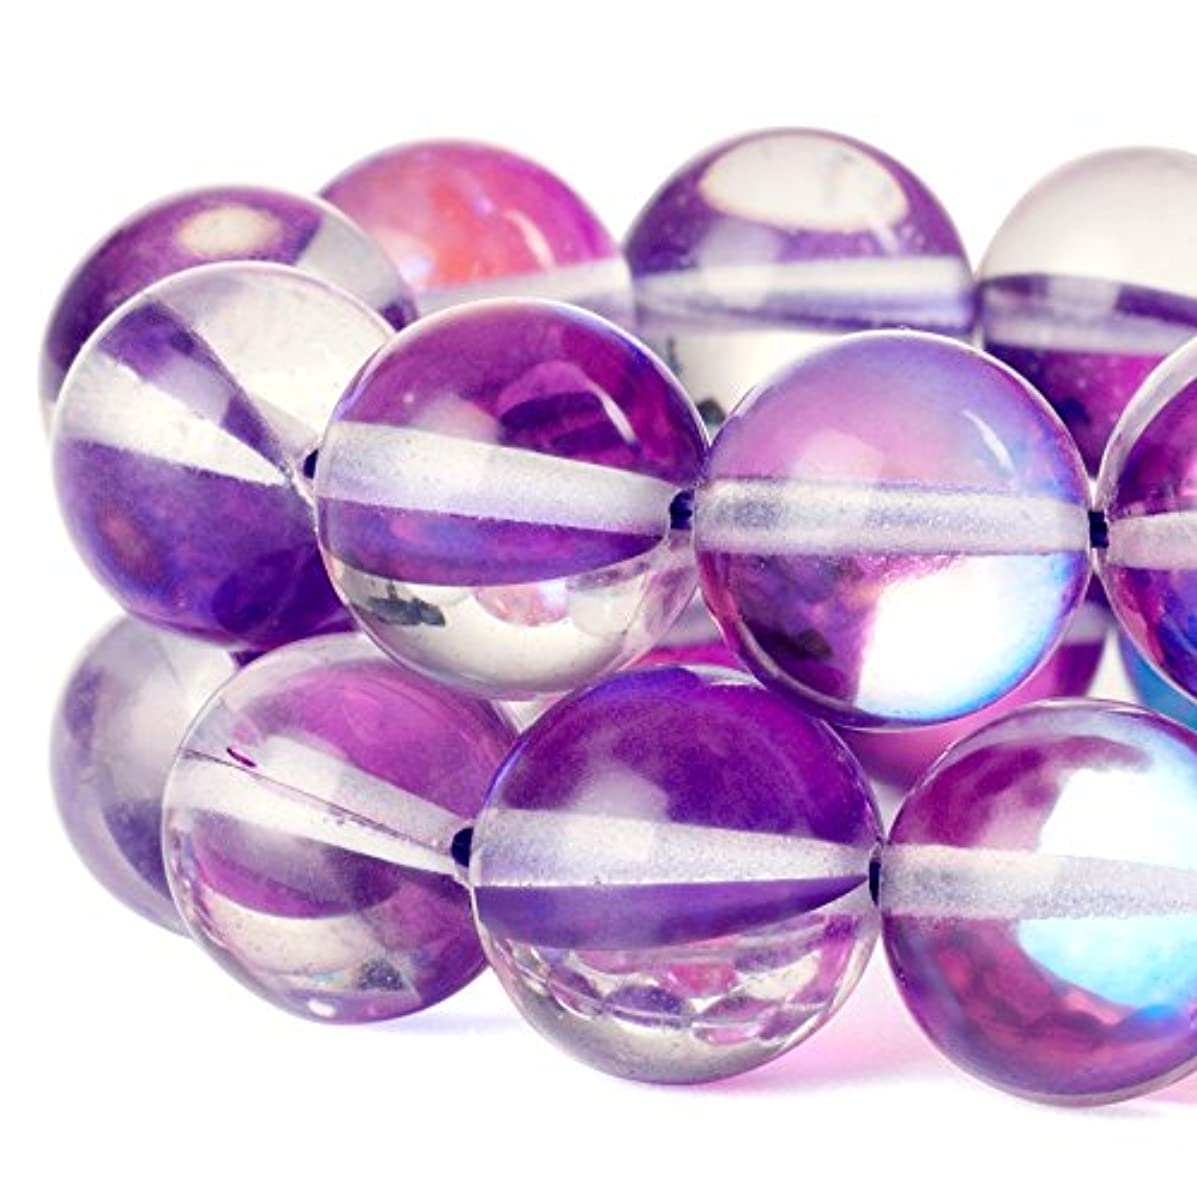 RUBYCA?Round?Moonstone?Crystal?Glass?Beads?Aura?Iridescent?for Jewelry Making?(1?strand,?12mm,?Purple)